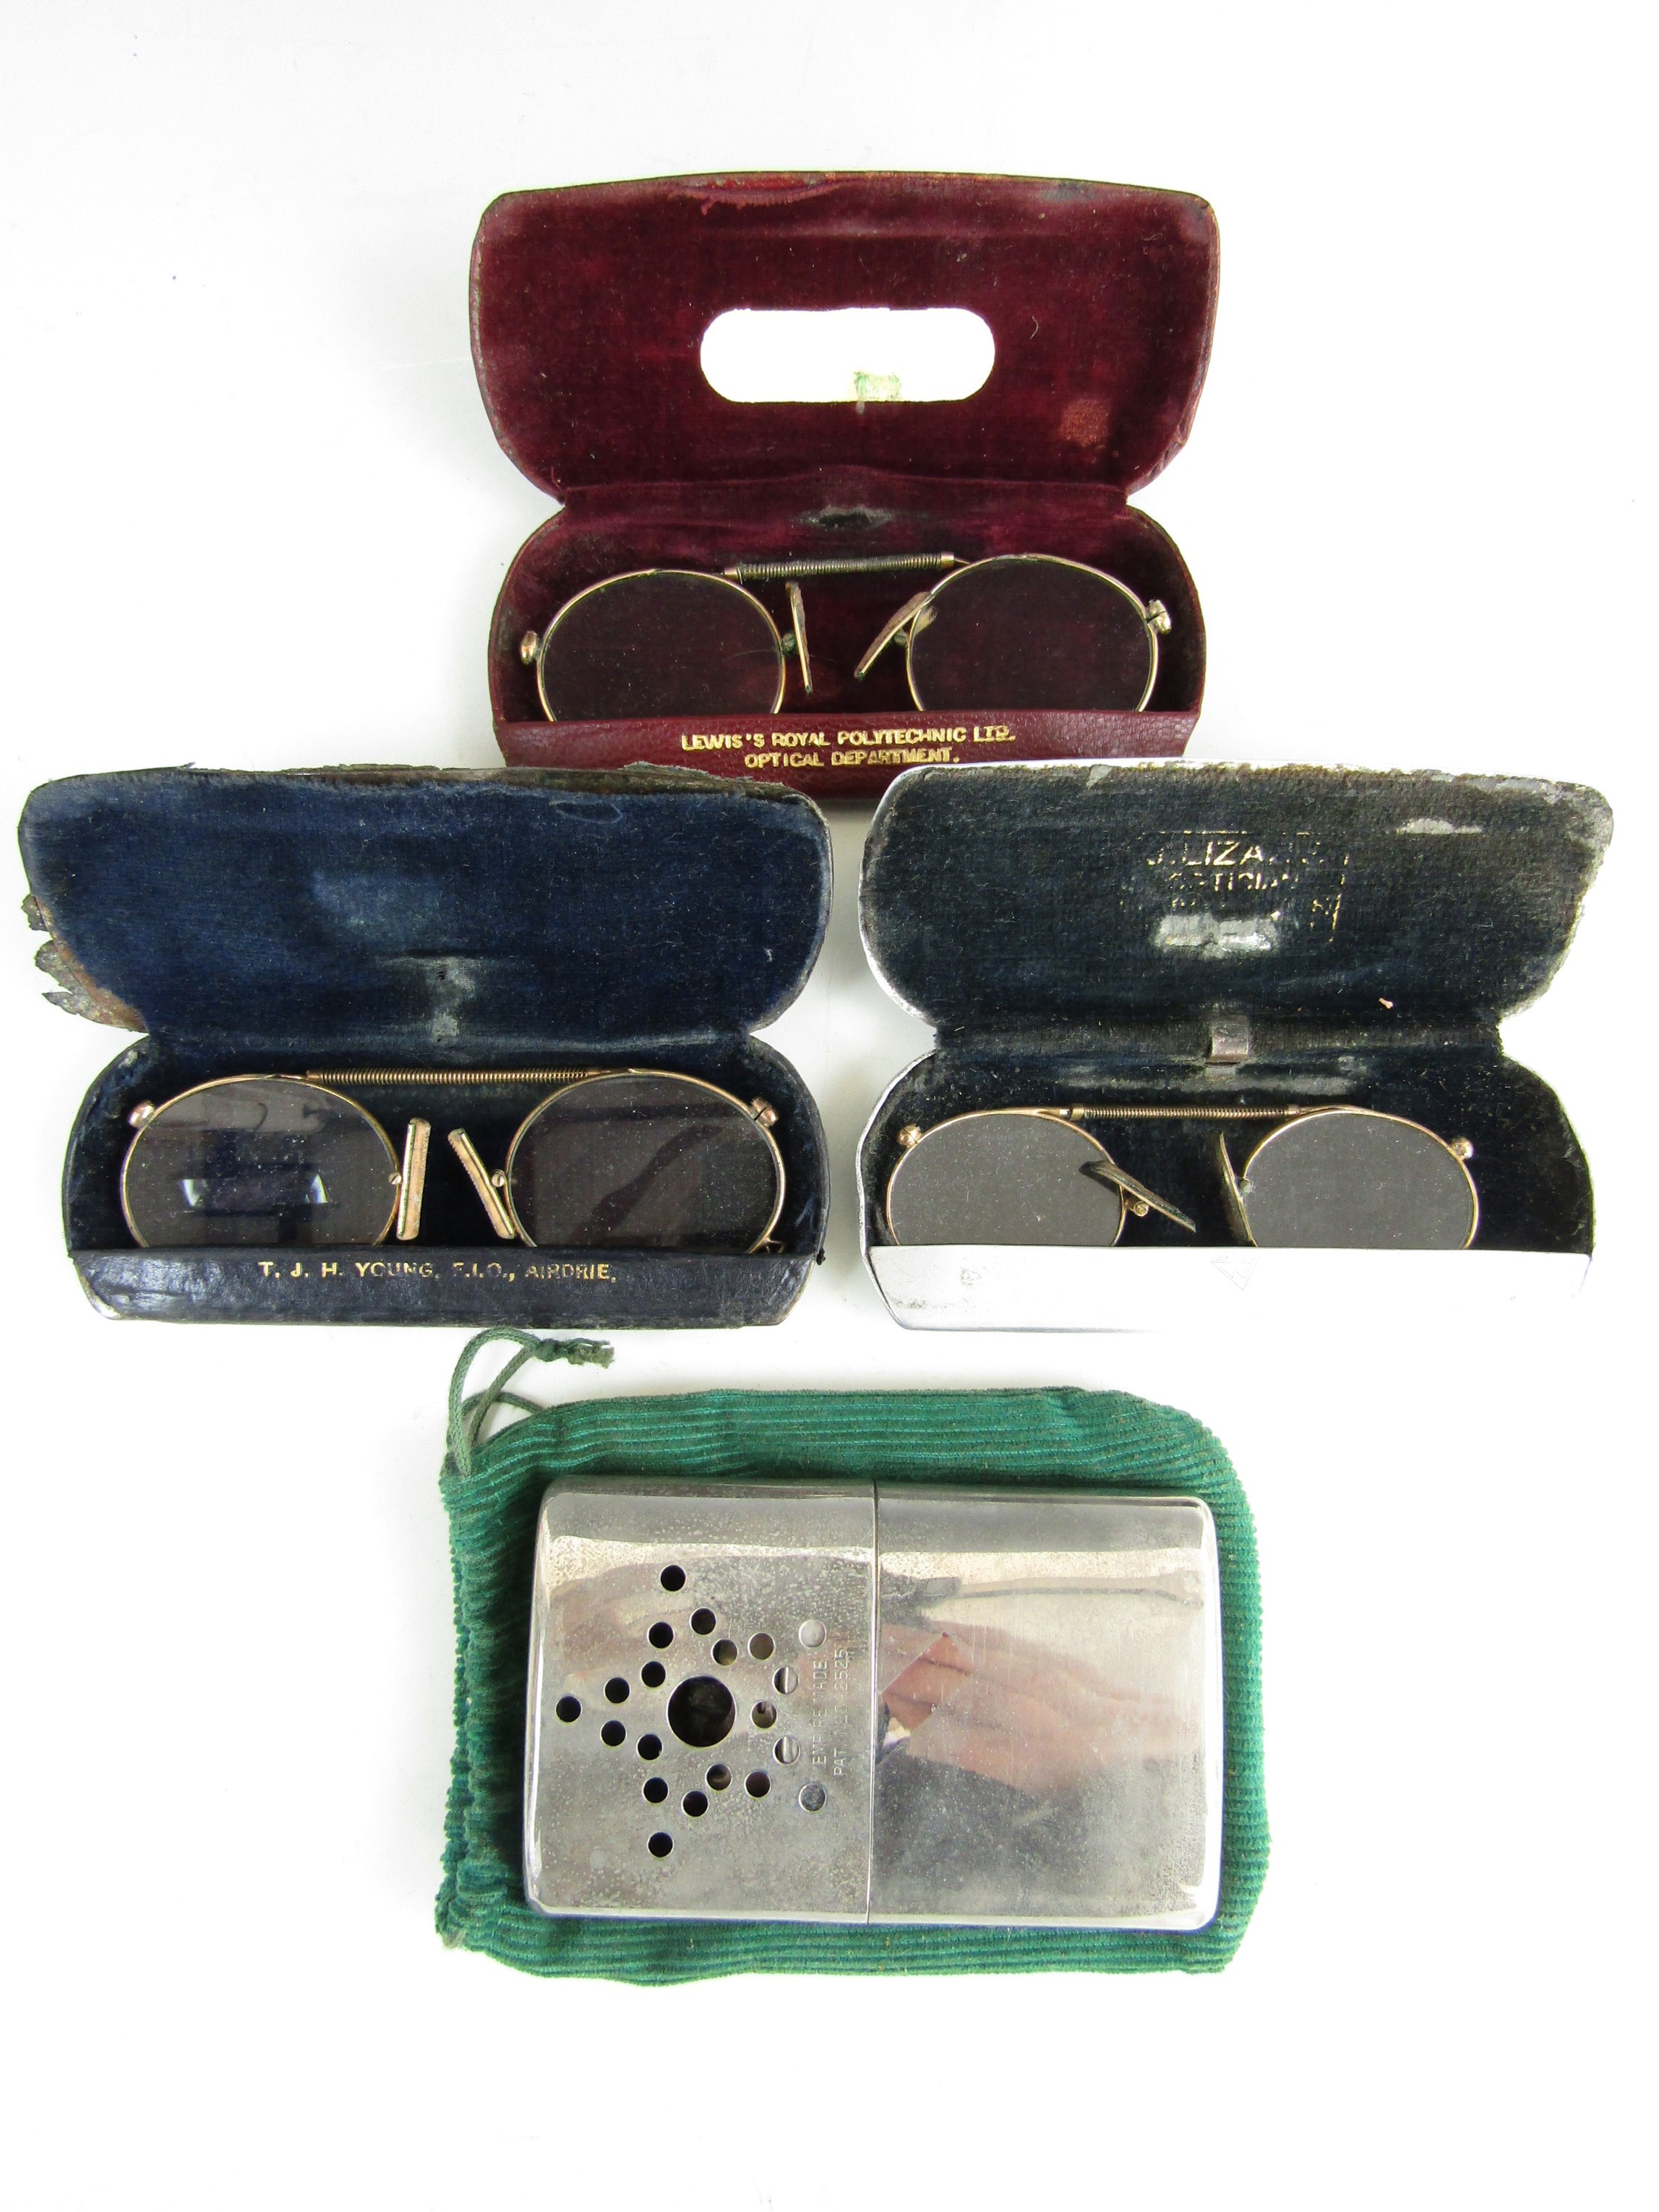 Lot 59 - Three pairs of pince nez spectacles together with a handwarmer